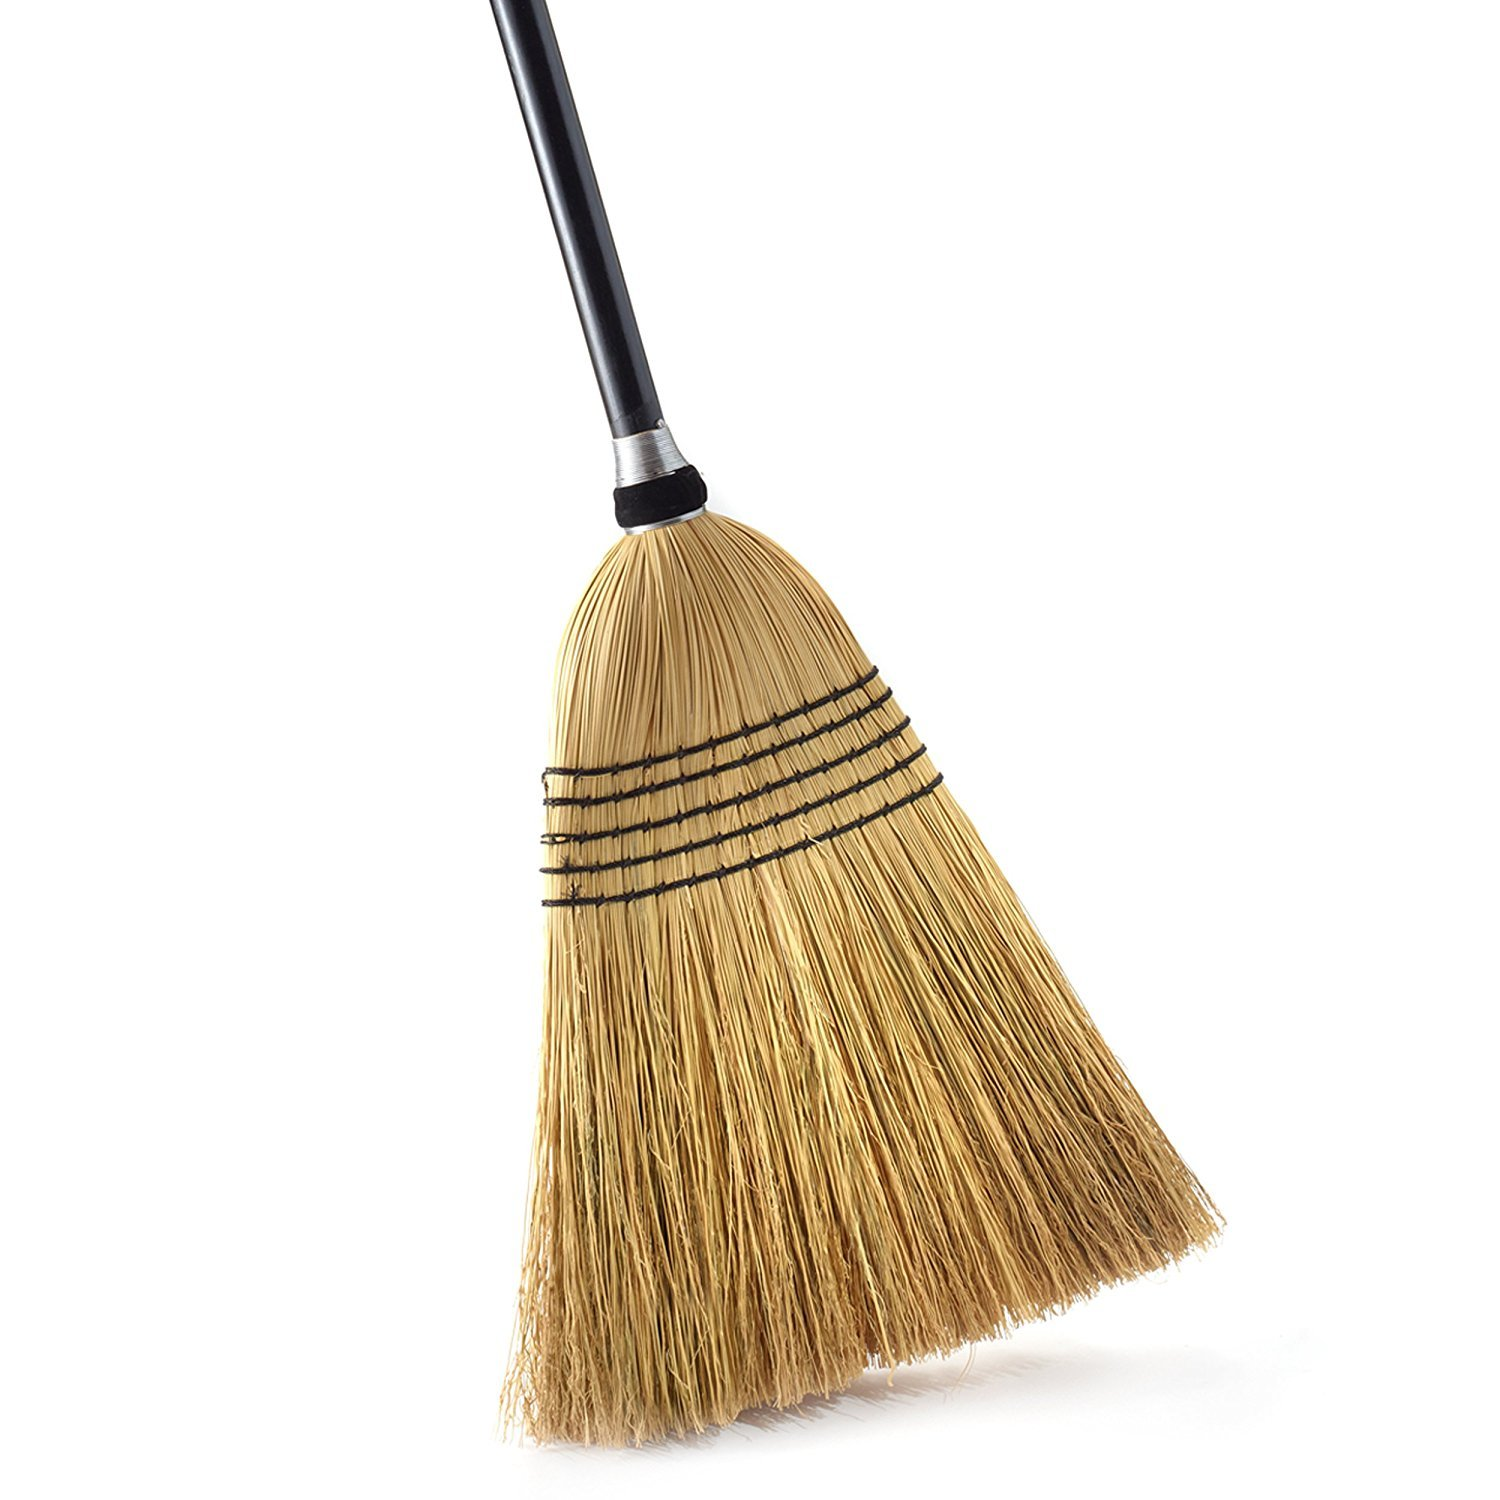 Types of brooms for a bath. How to choose a bath broom and can I do it myself 50